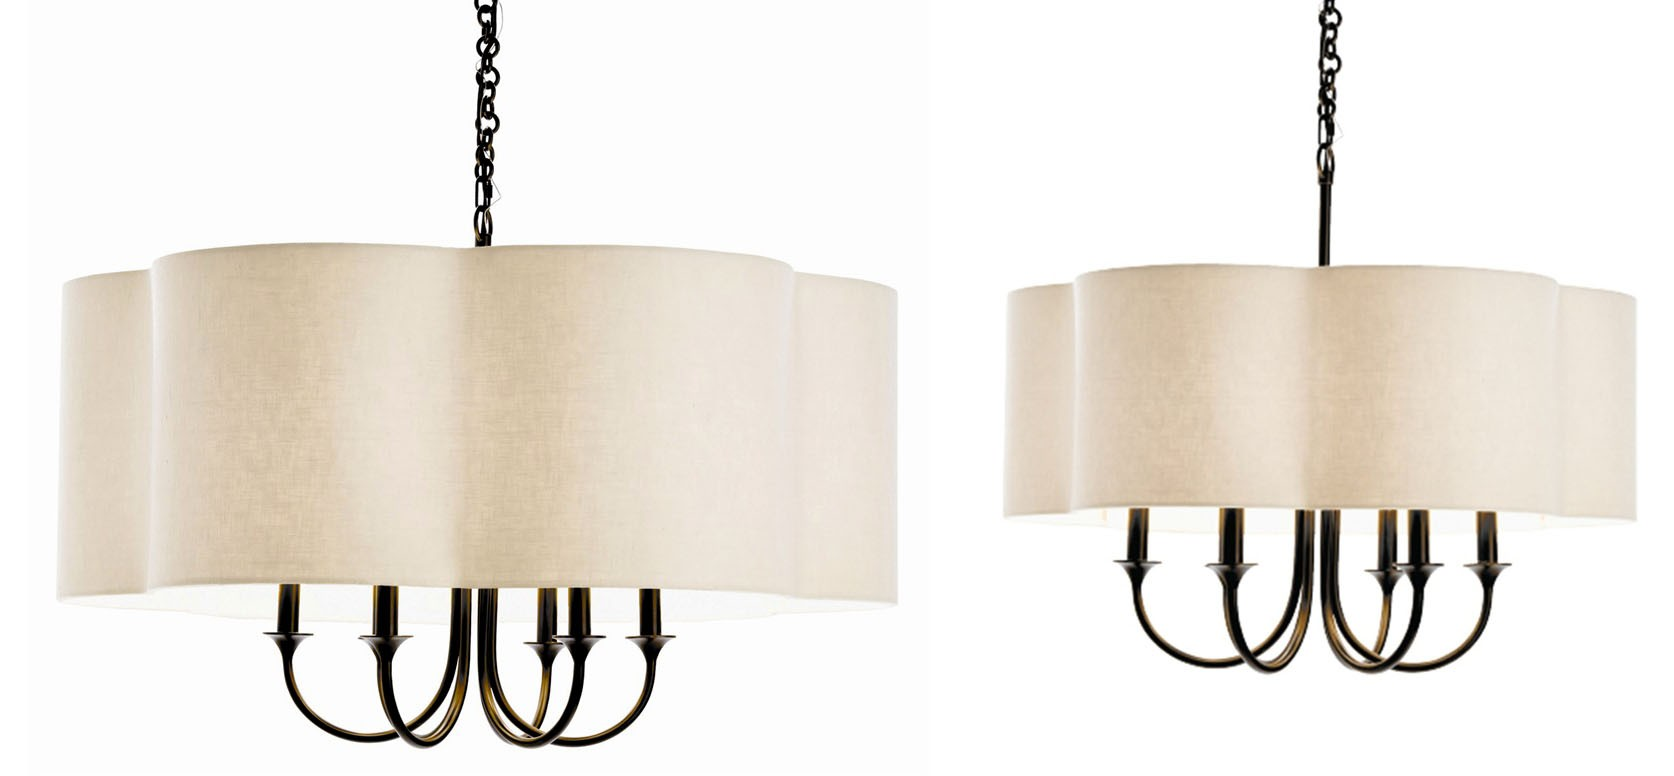 Arteriors rittenhouse chandeliers tuvalu home tuvalu coastal arteriors rittenhouse chandeliers arubaitofo Images